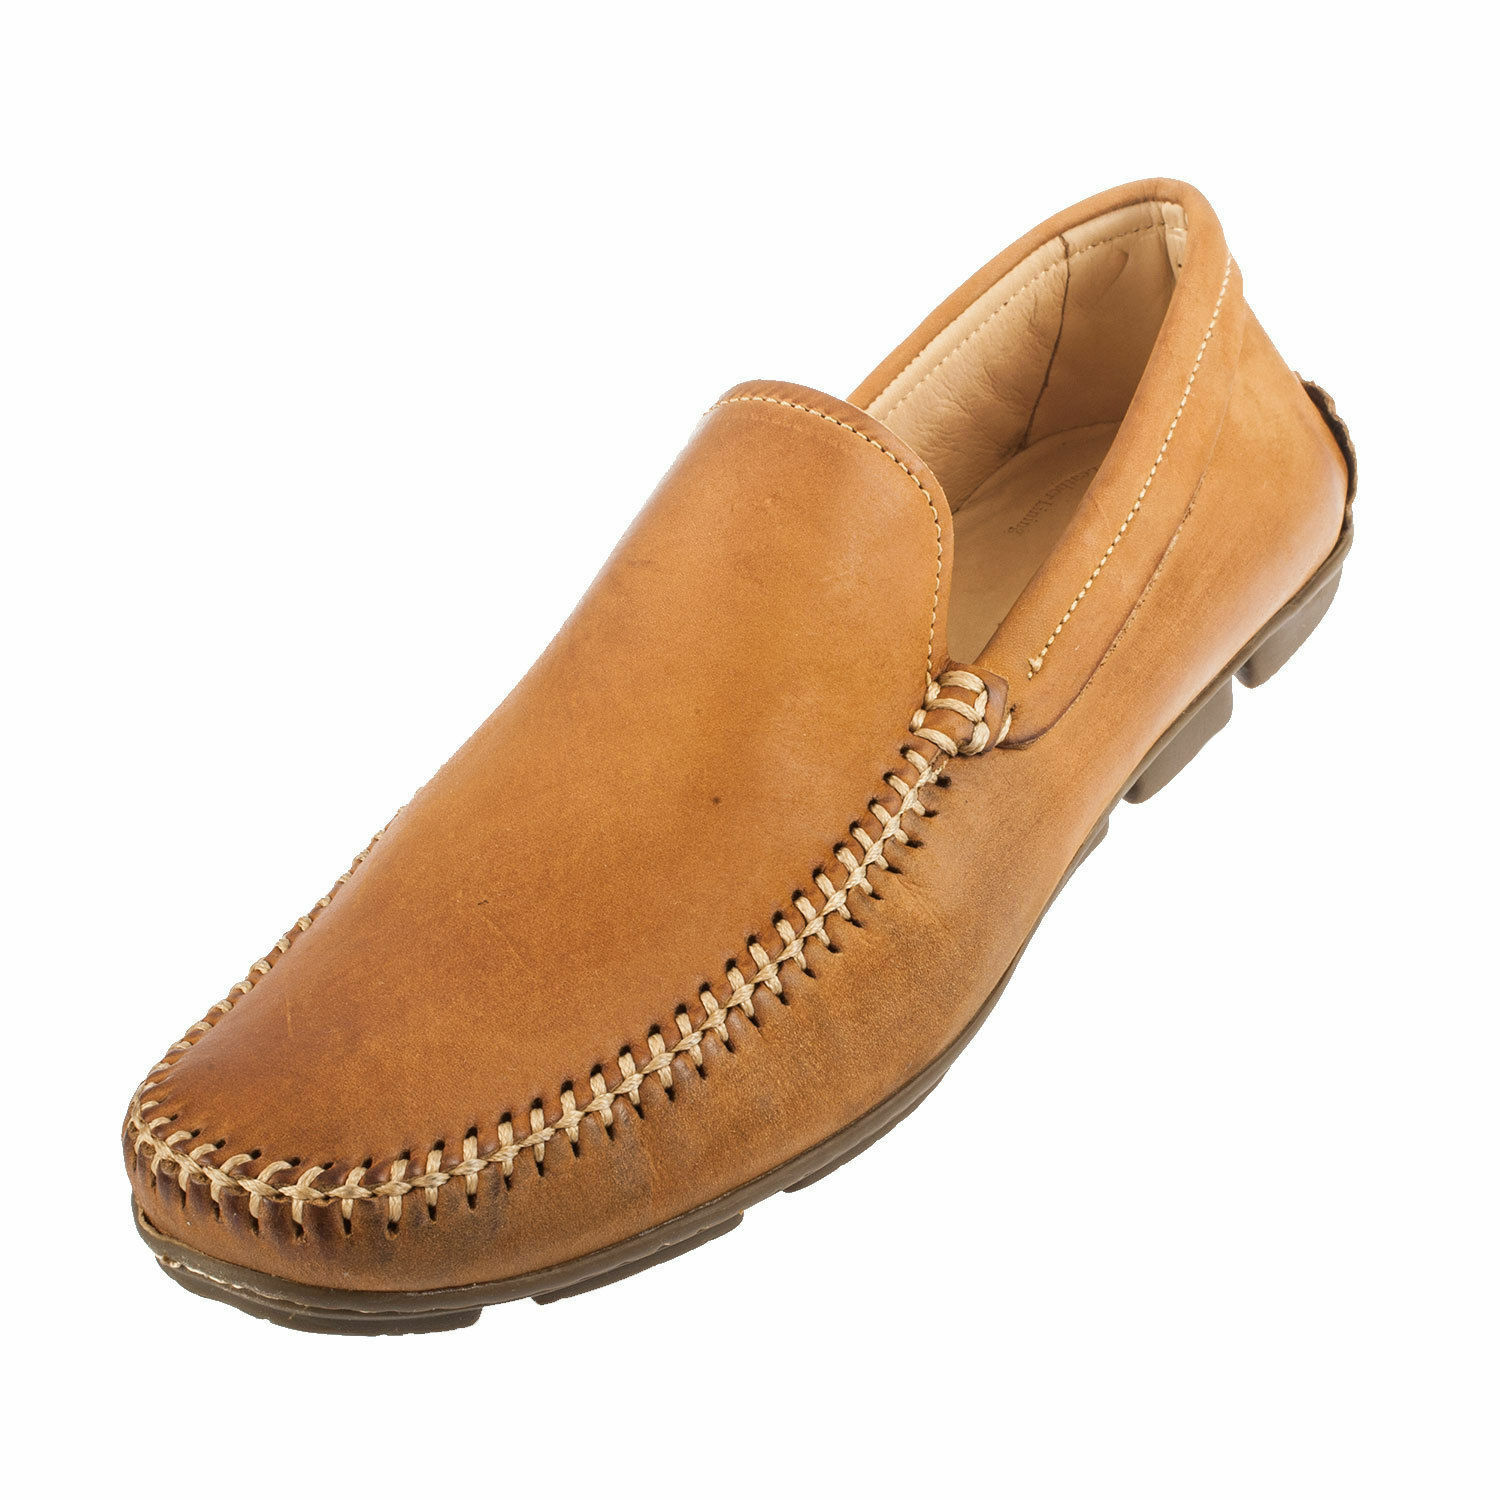 NEW ANATOMIC&CO ARUJA CASTOR VINTAGE TAN DRIVING SHOES LOAFERS SIZE UK 8 / EU 42